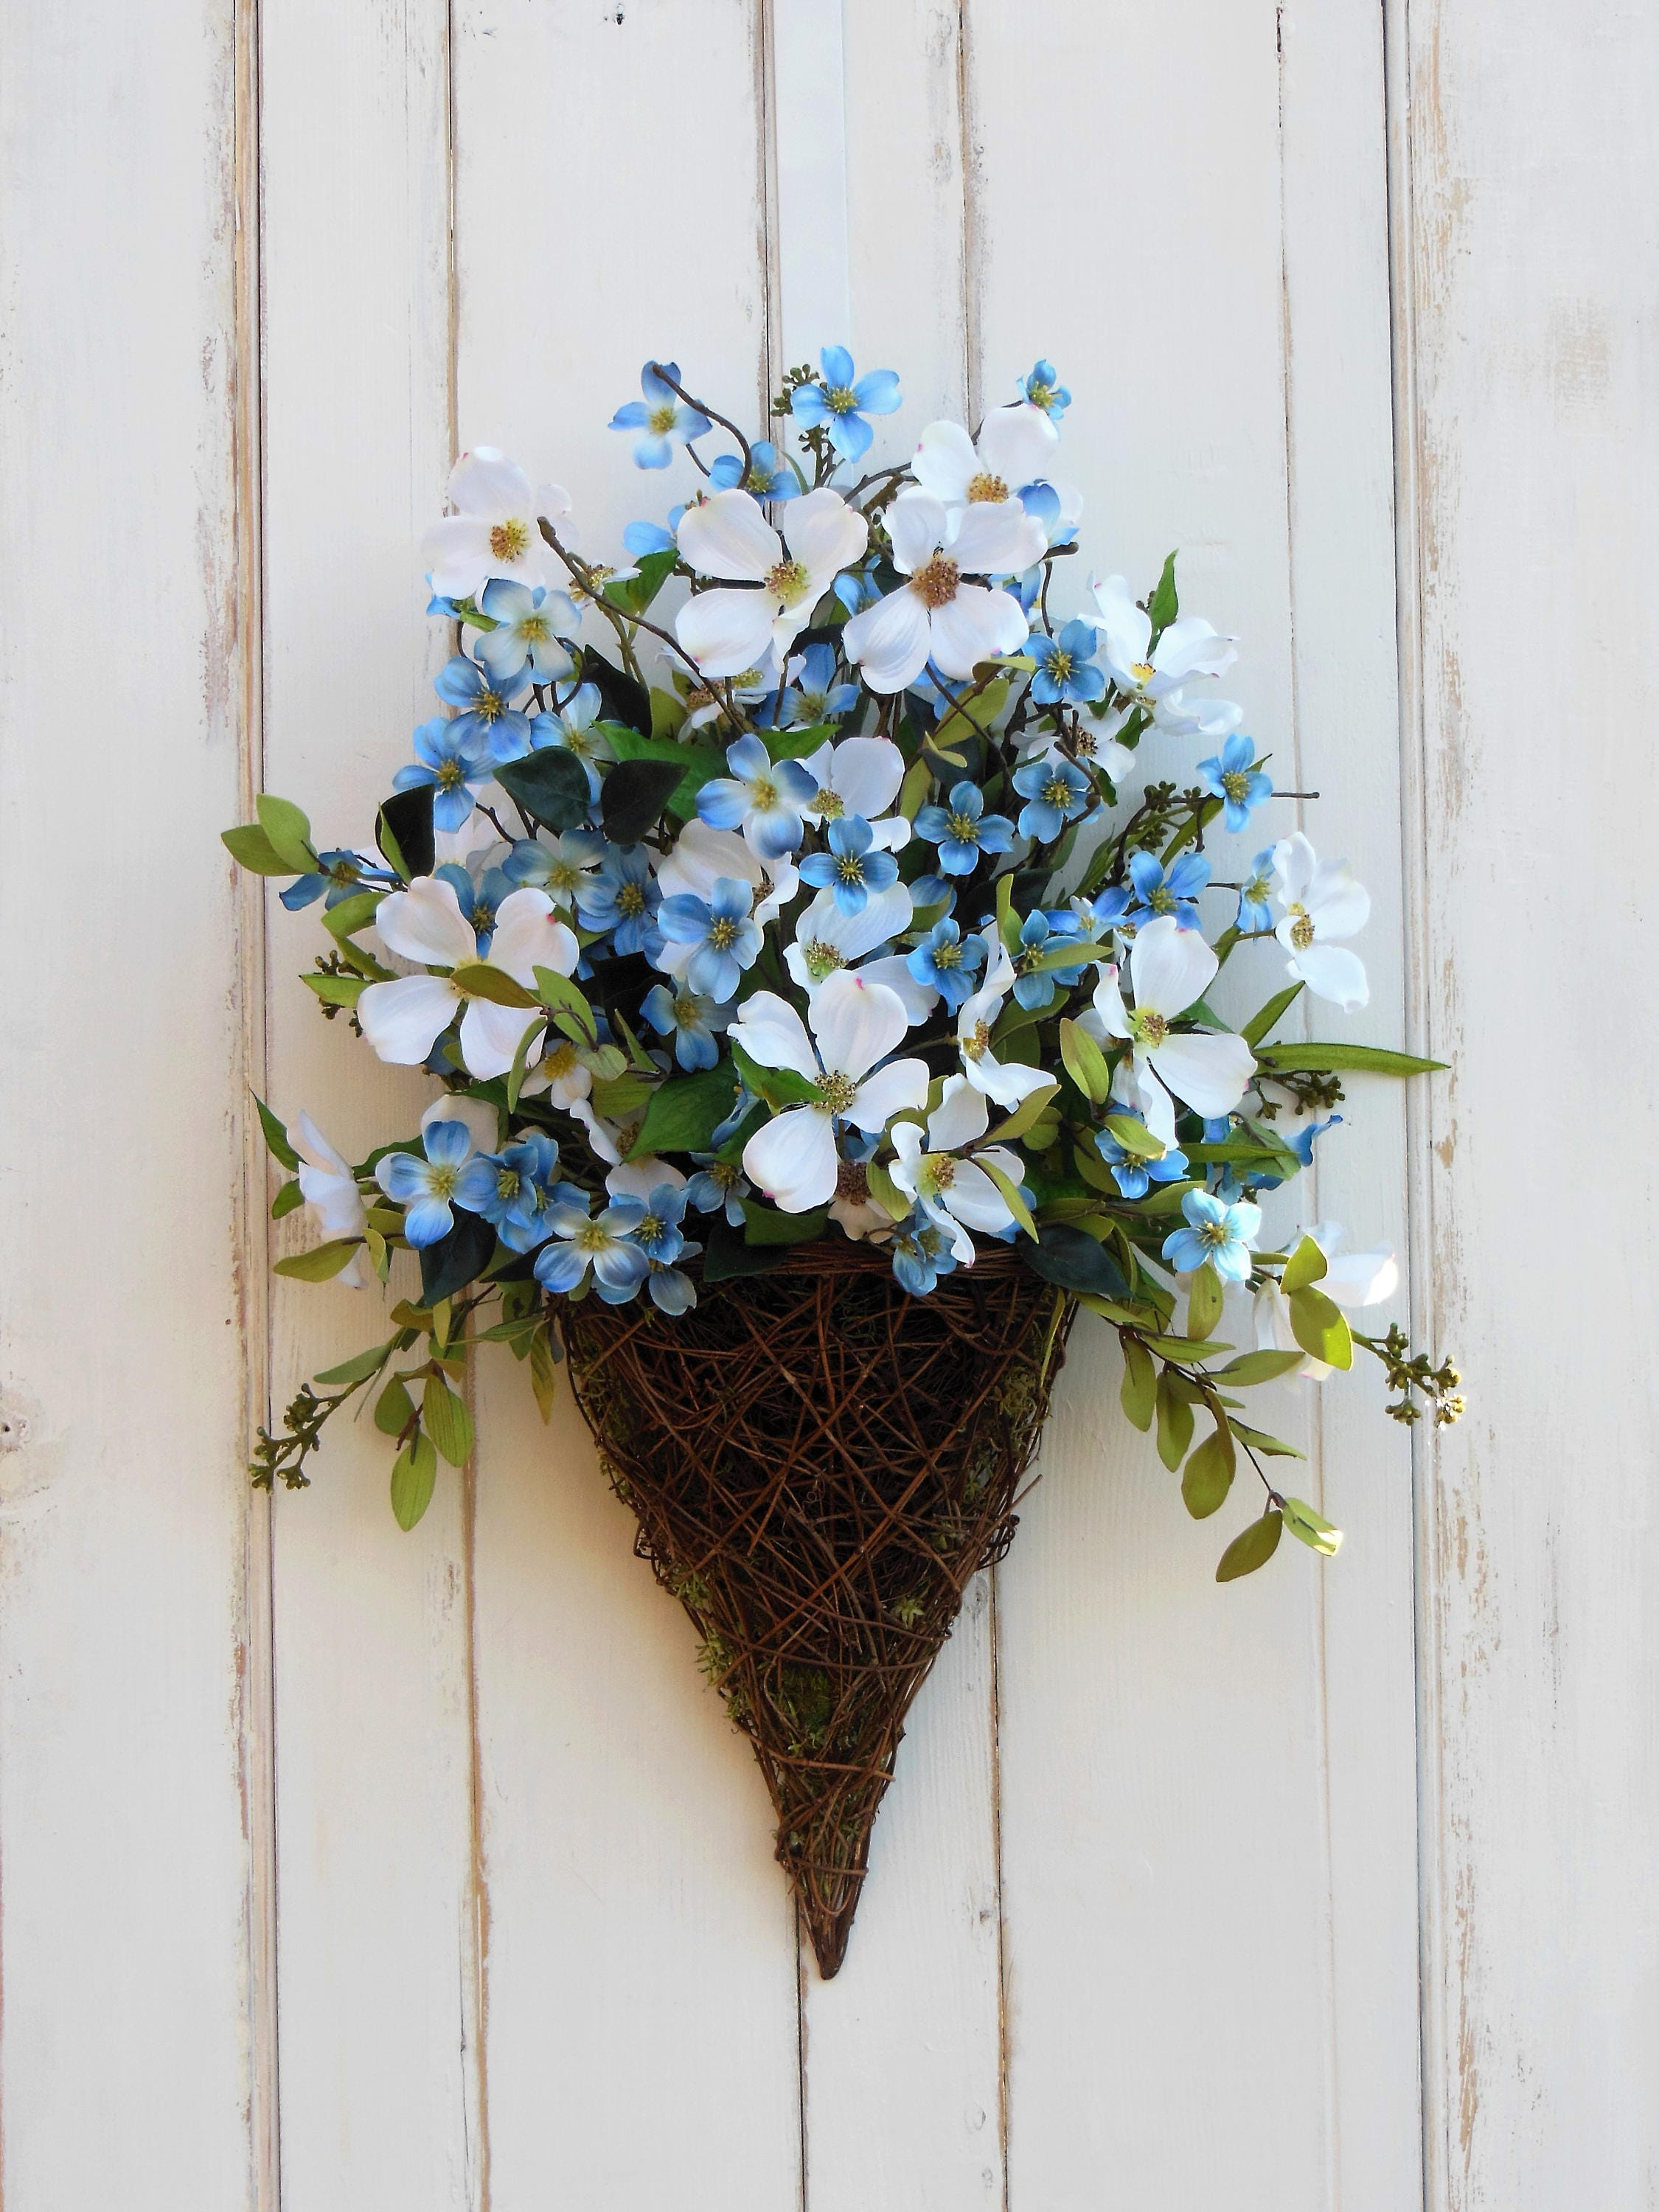 Front Door Wreath Door Basket Blue Flower Wreath Summer Wreath All Season Wreath Wreath for Summer Summer Door Basket Everyday Wreath : door basket - Pezcame.Com